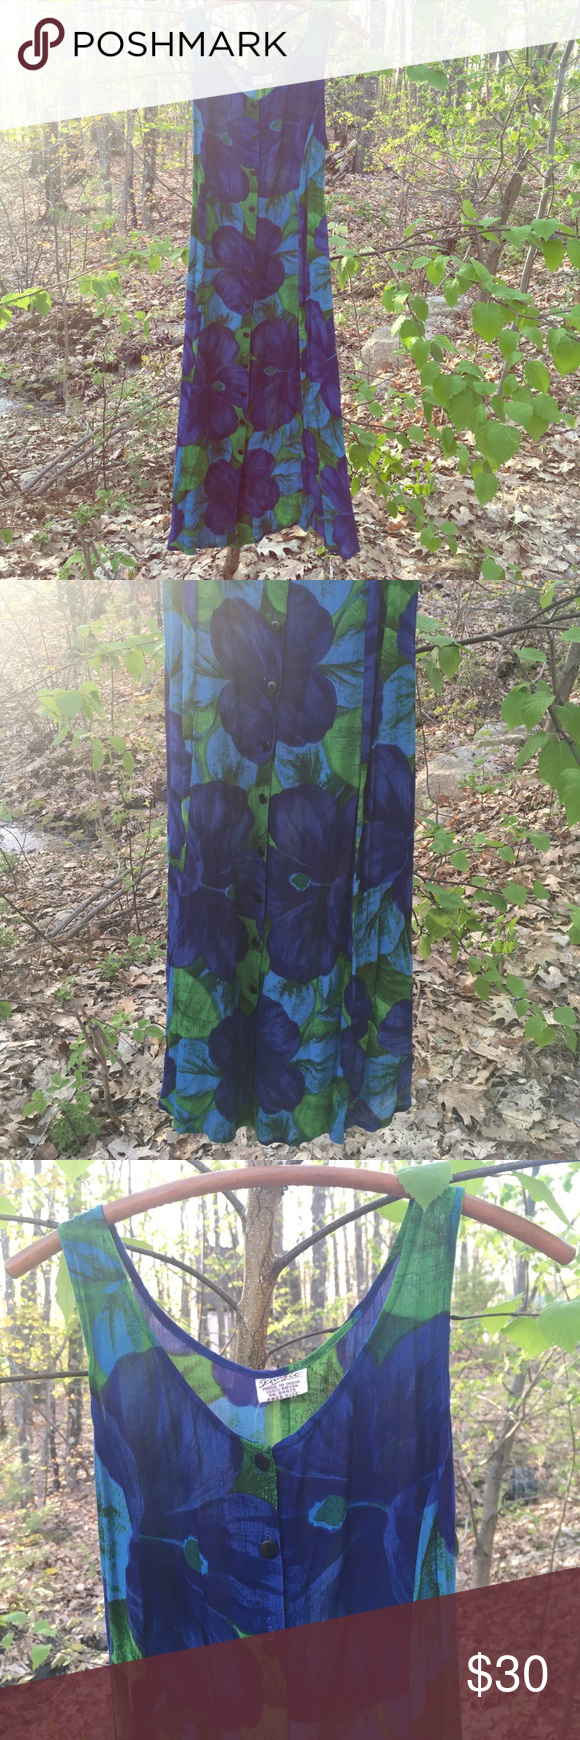 Vintage 90's Indian Gauze Dress Vintage gauzy dress. Deadstock, with tags. Never been worn. One size fits most, adjustable tie in back. Buttons all the way up. Beautiful blues and green floral print. Made in India. Vintage Dresses Maxi